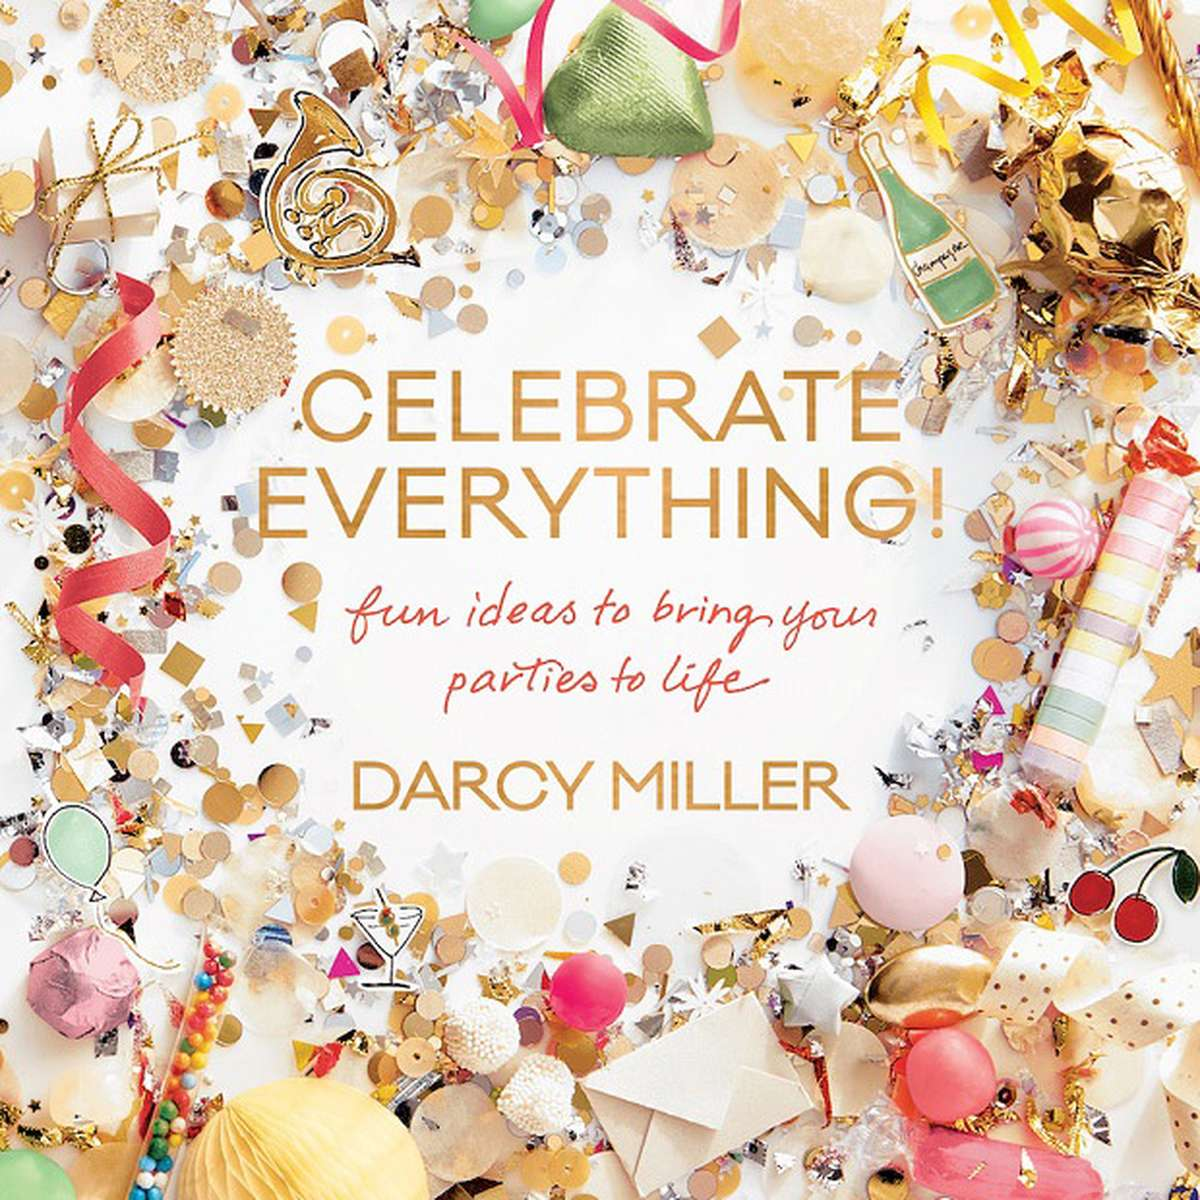 Darcy Miller Celebrate Everything